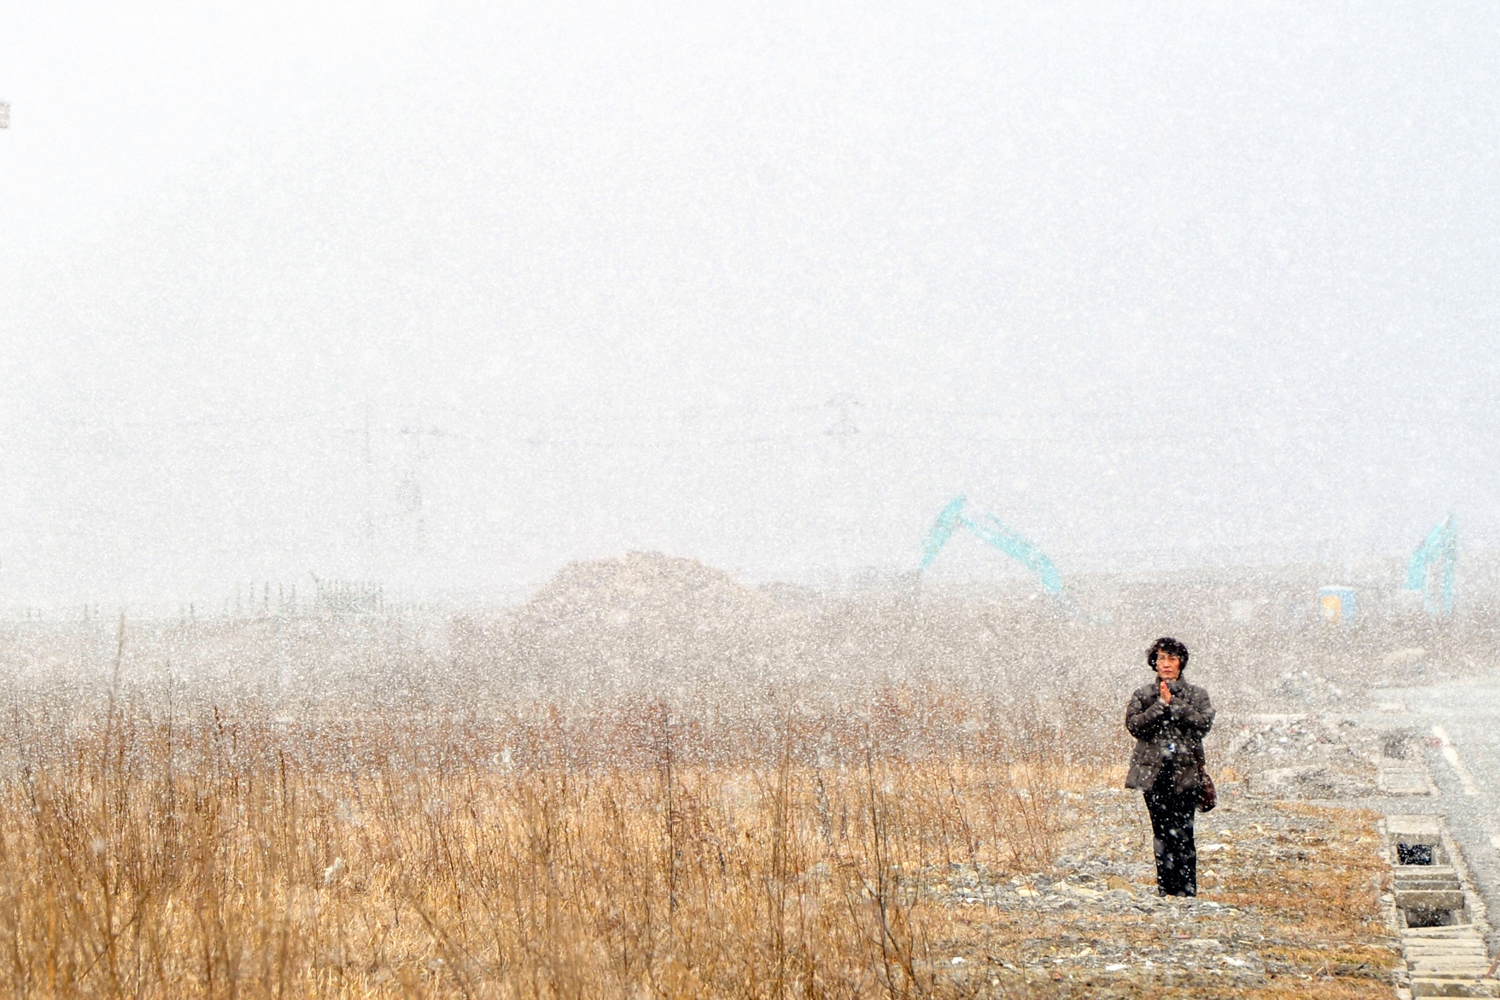 Feb. 11, 2013. A woman stands in the snow and prays towards the former city hall in Minamisanriku, Miyagi, Japan.